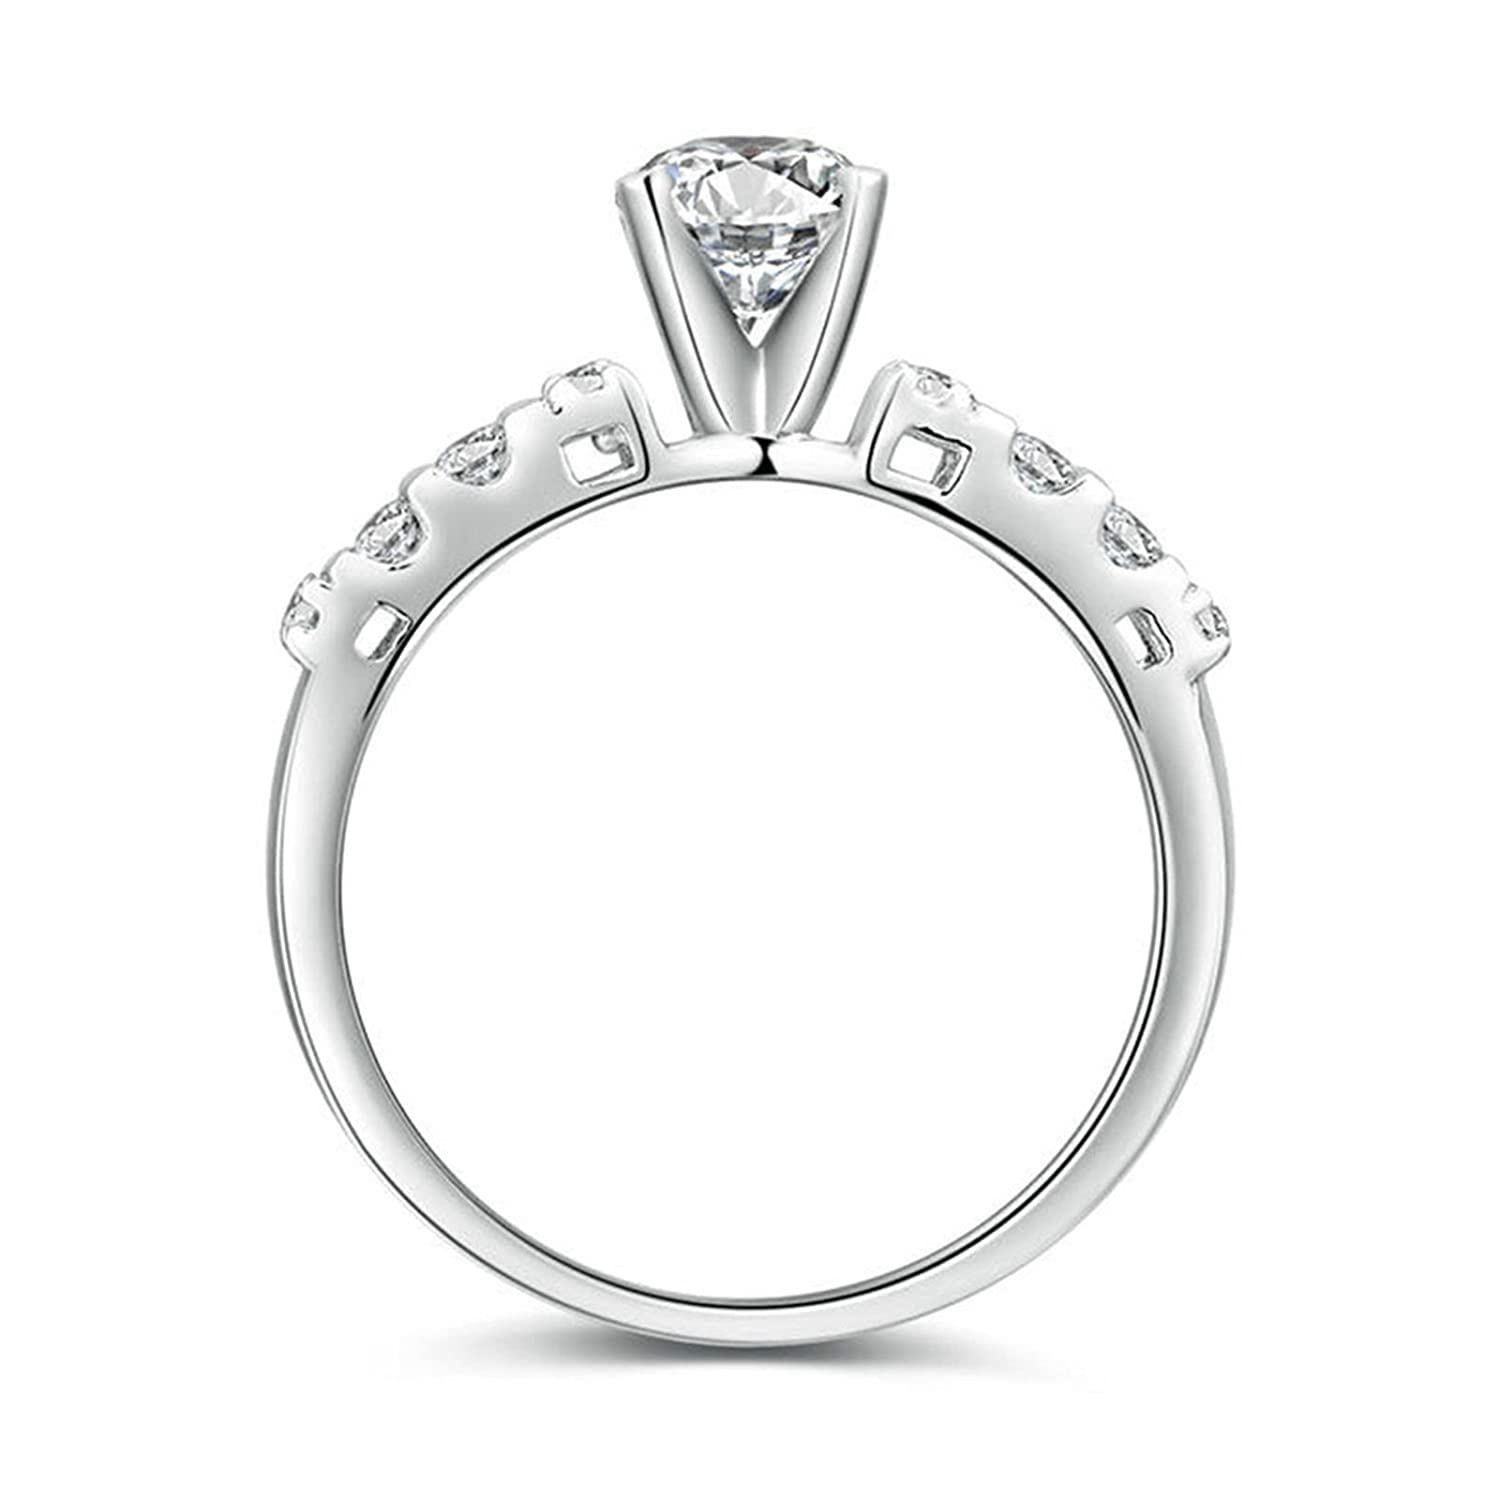 Free Engraving Silver Plated Rings Engagement Diamond Rectangle Inlay 4-Prong Single with White Cubic Zirconia CZ 5-12 Adisaer